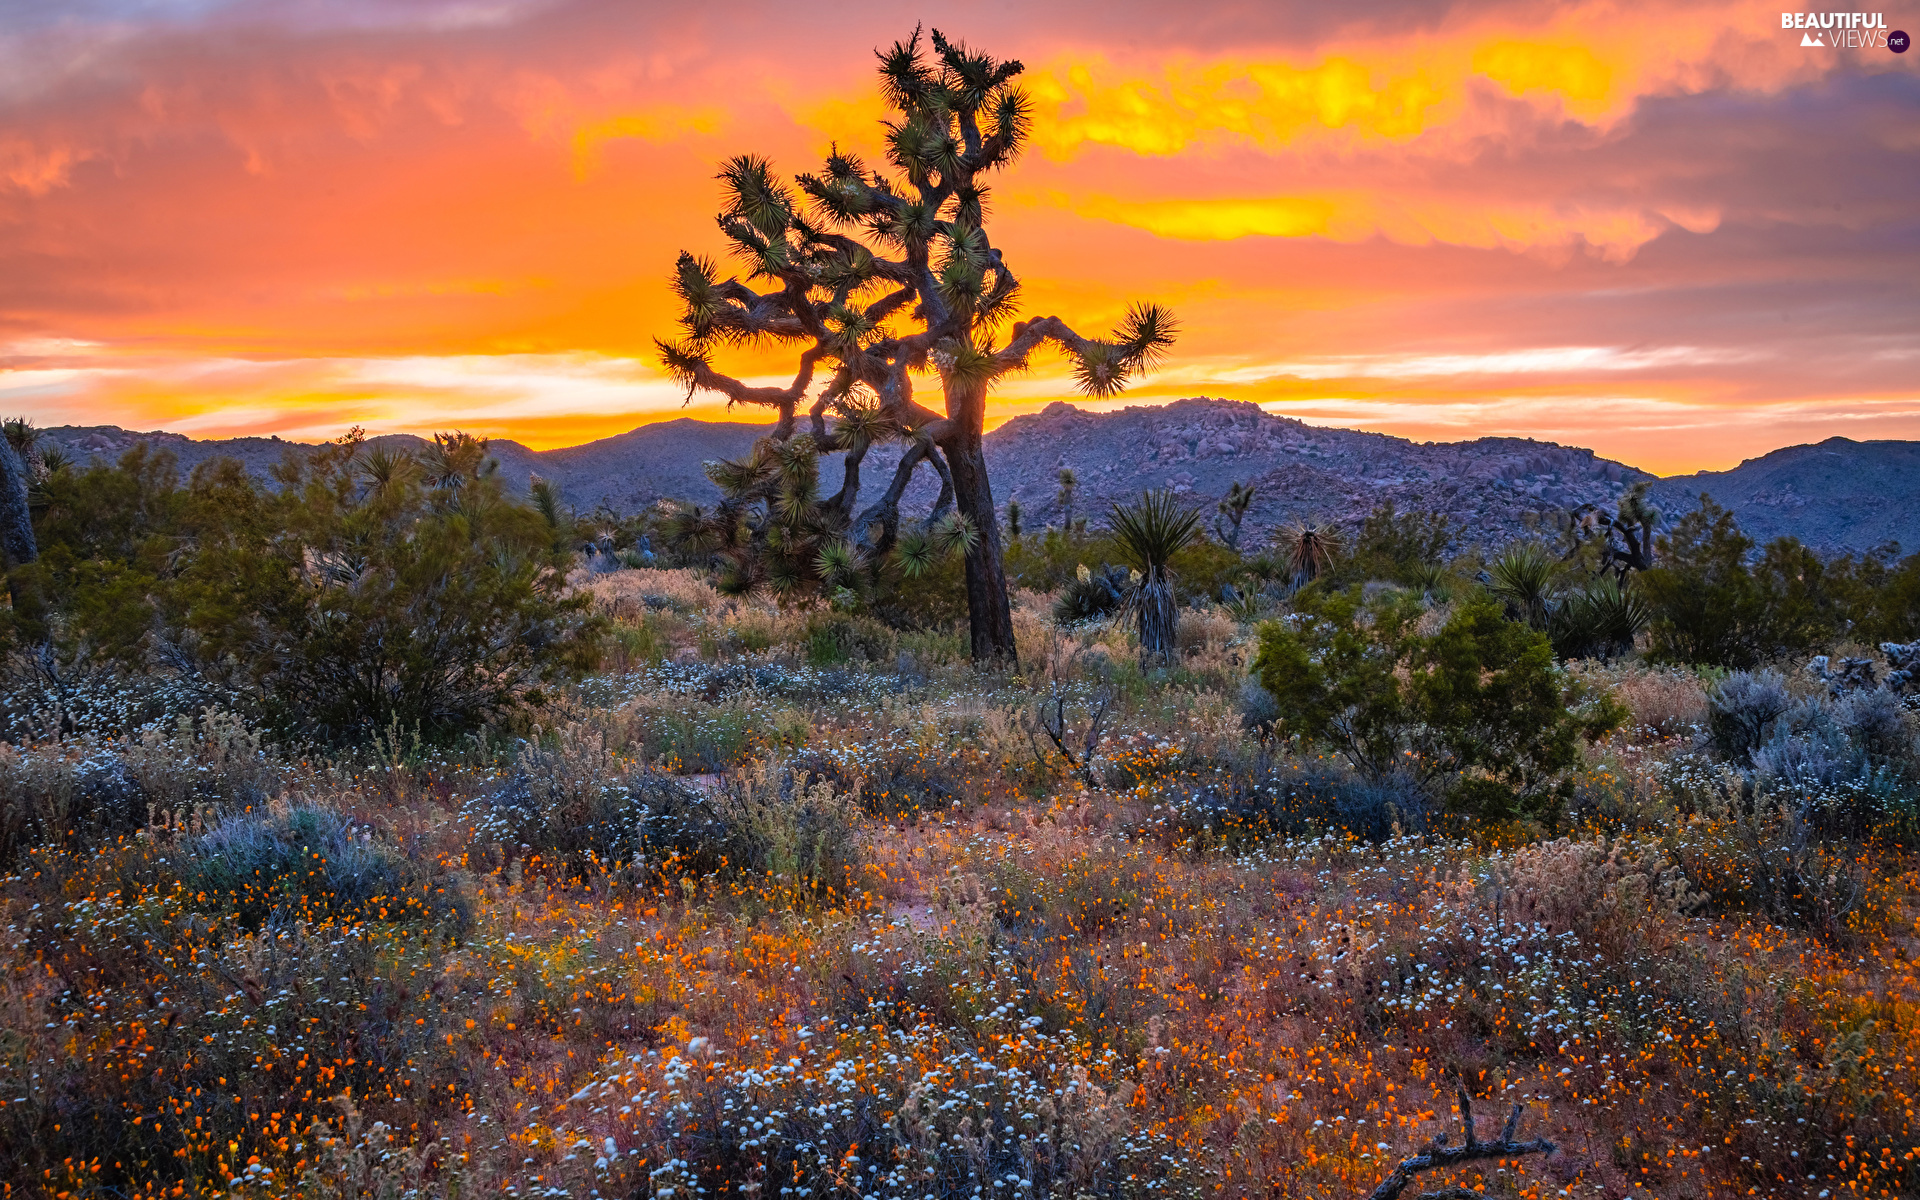 Flowers, Great Sunsets, California, The United States, Joshua Tree National Park, Joshua Tree